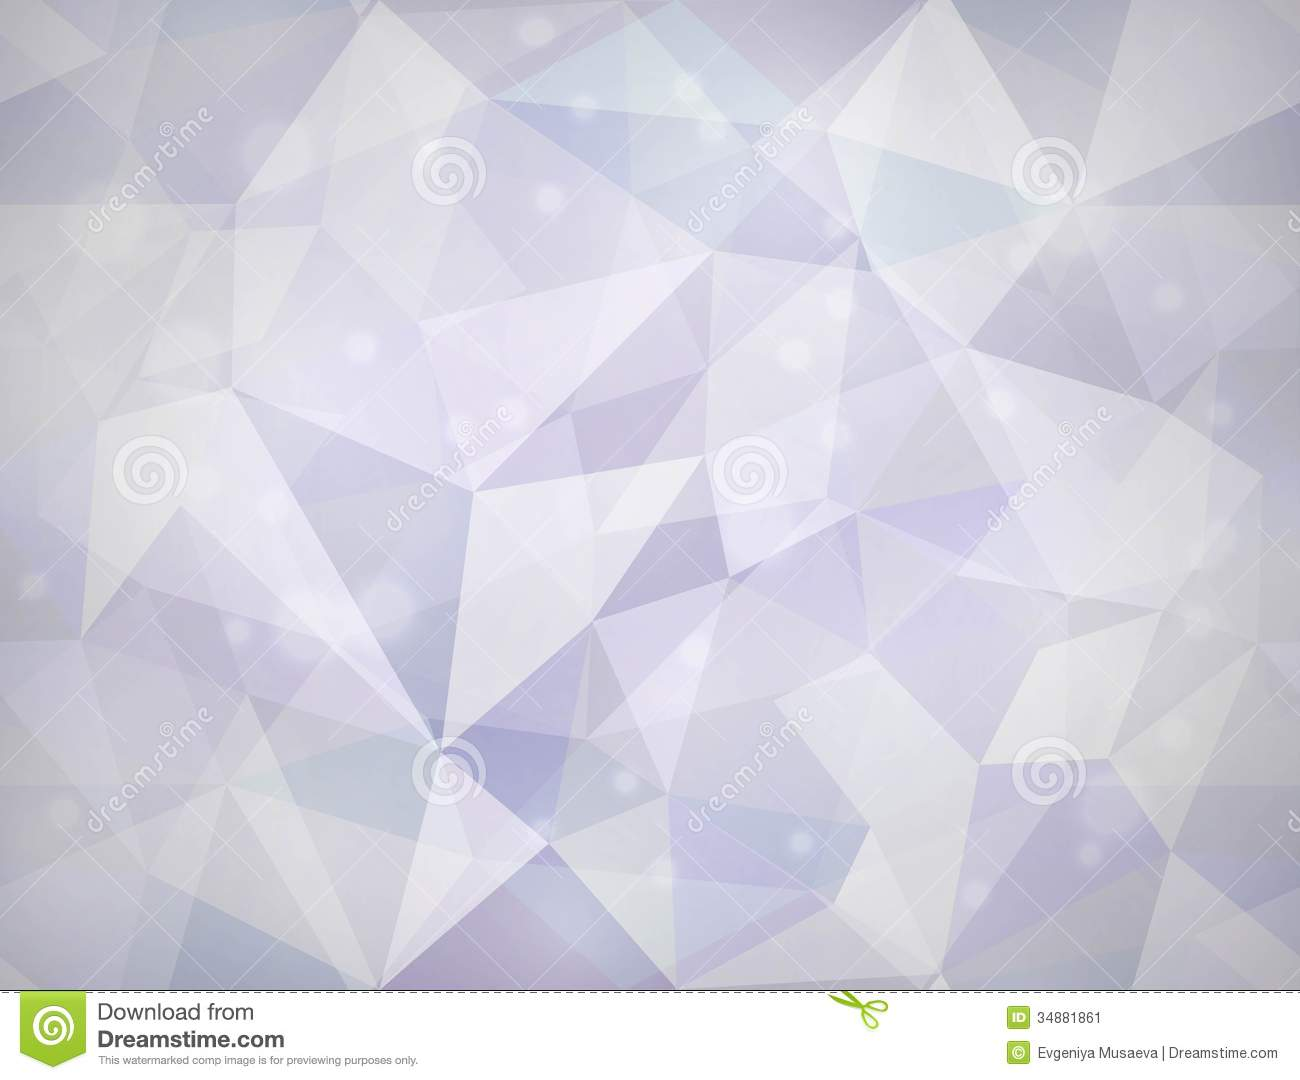 Triangle Texture. Vector Seamless Background. Stock Image - Image: 34881861